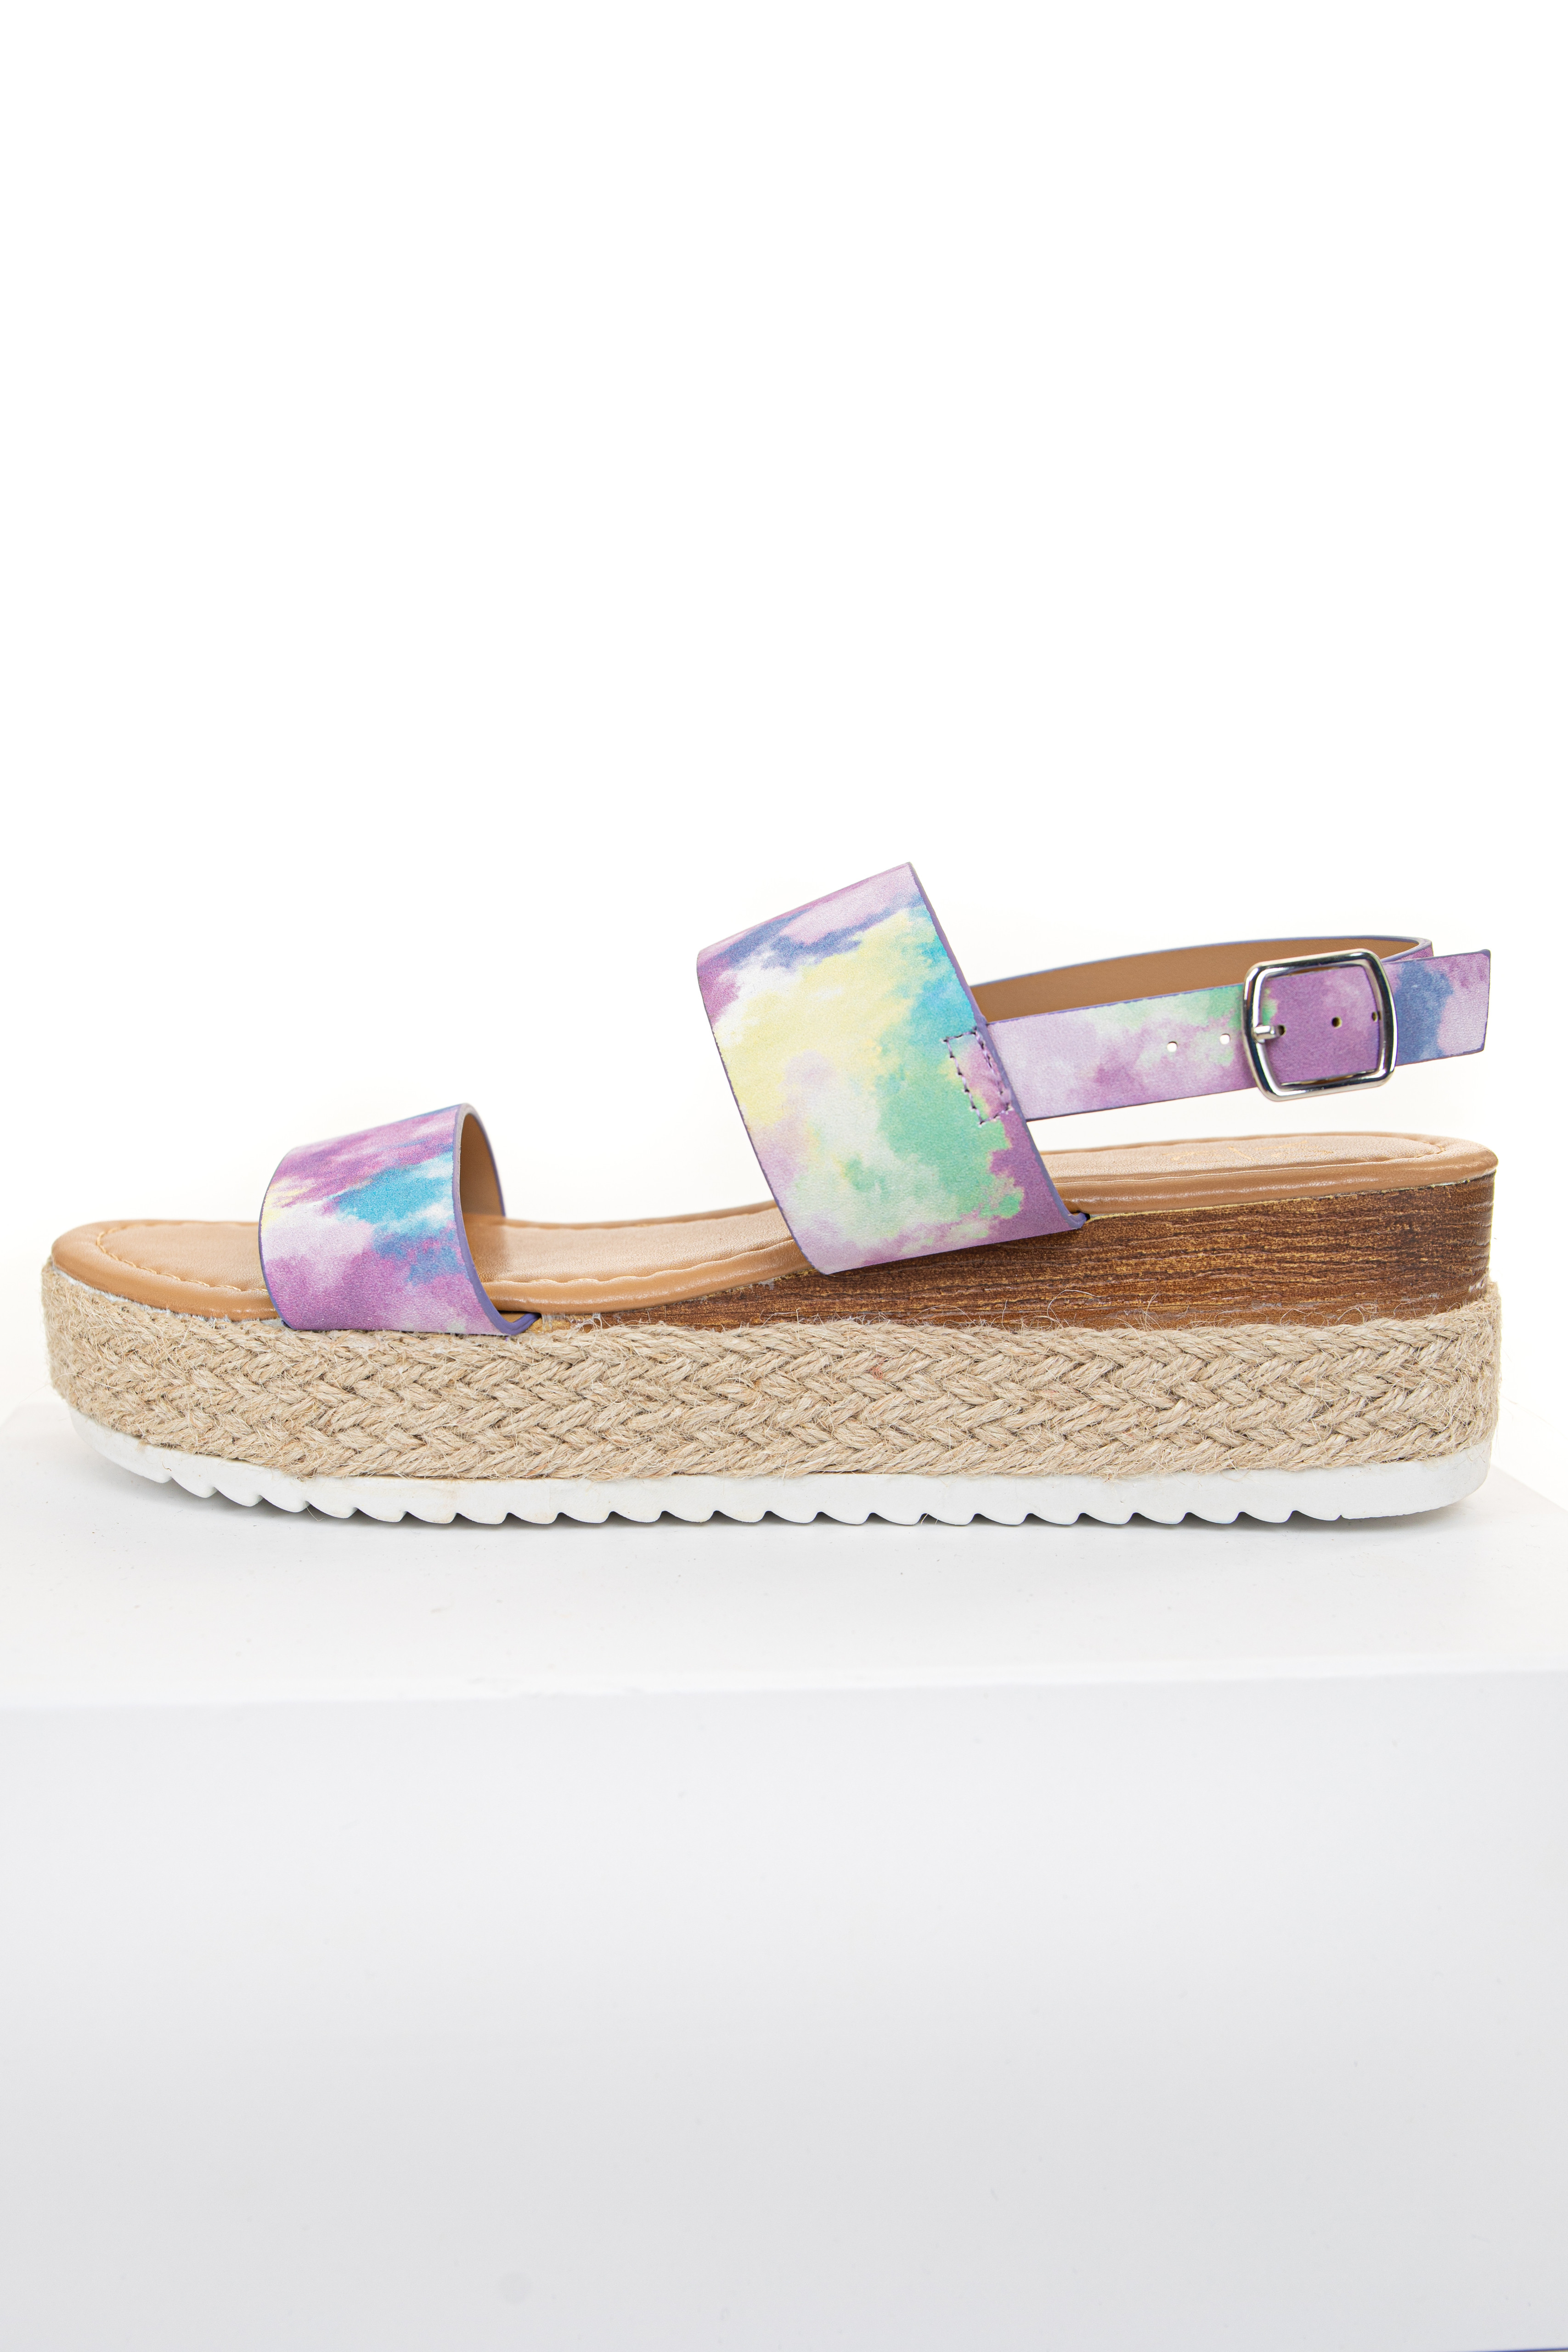 Tie Dye Faux Leather Espadrille Sandals with Buckle Closure